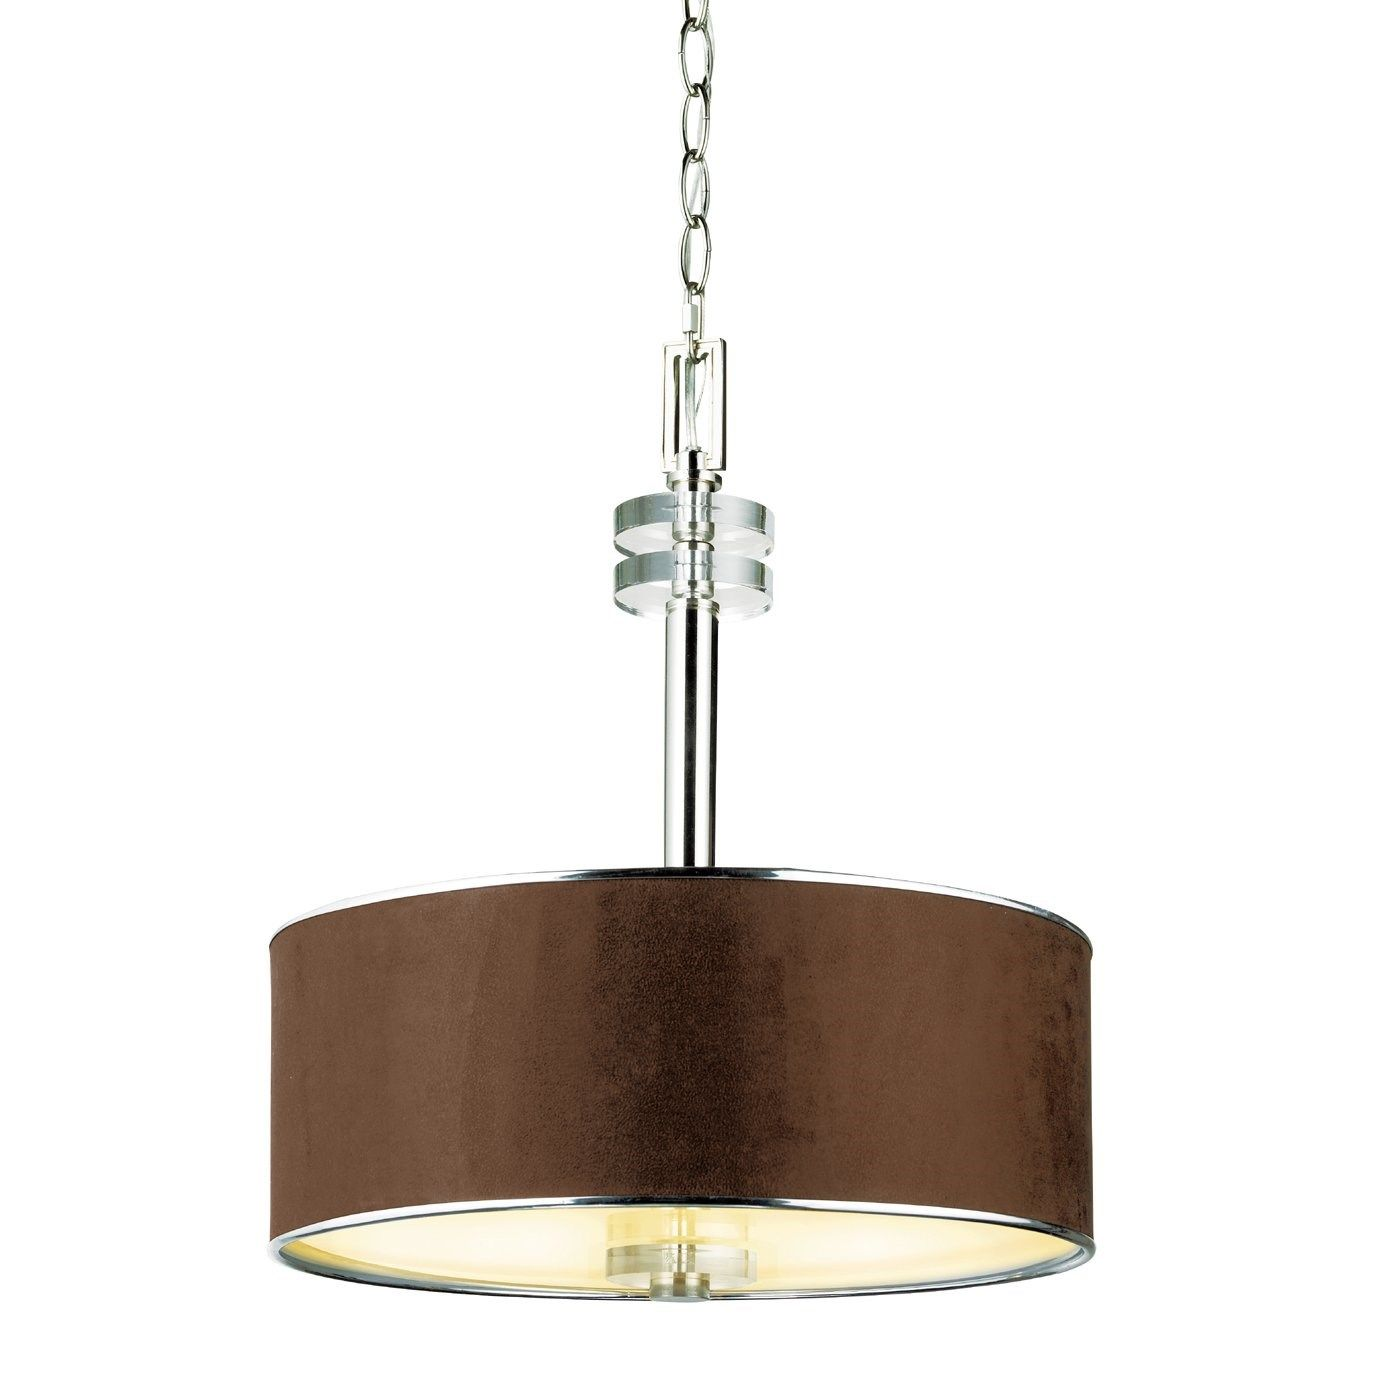 Eurofase 028 Savvy 3 Light Pendant in Satin Nickel